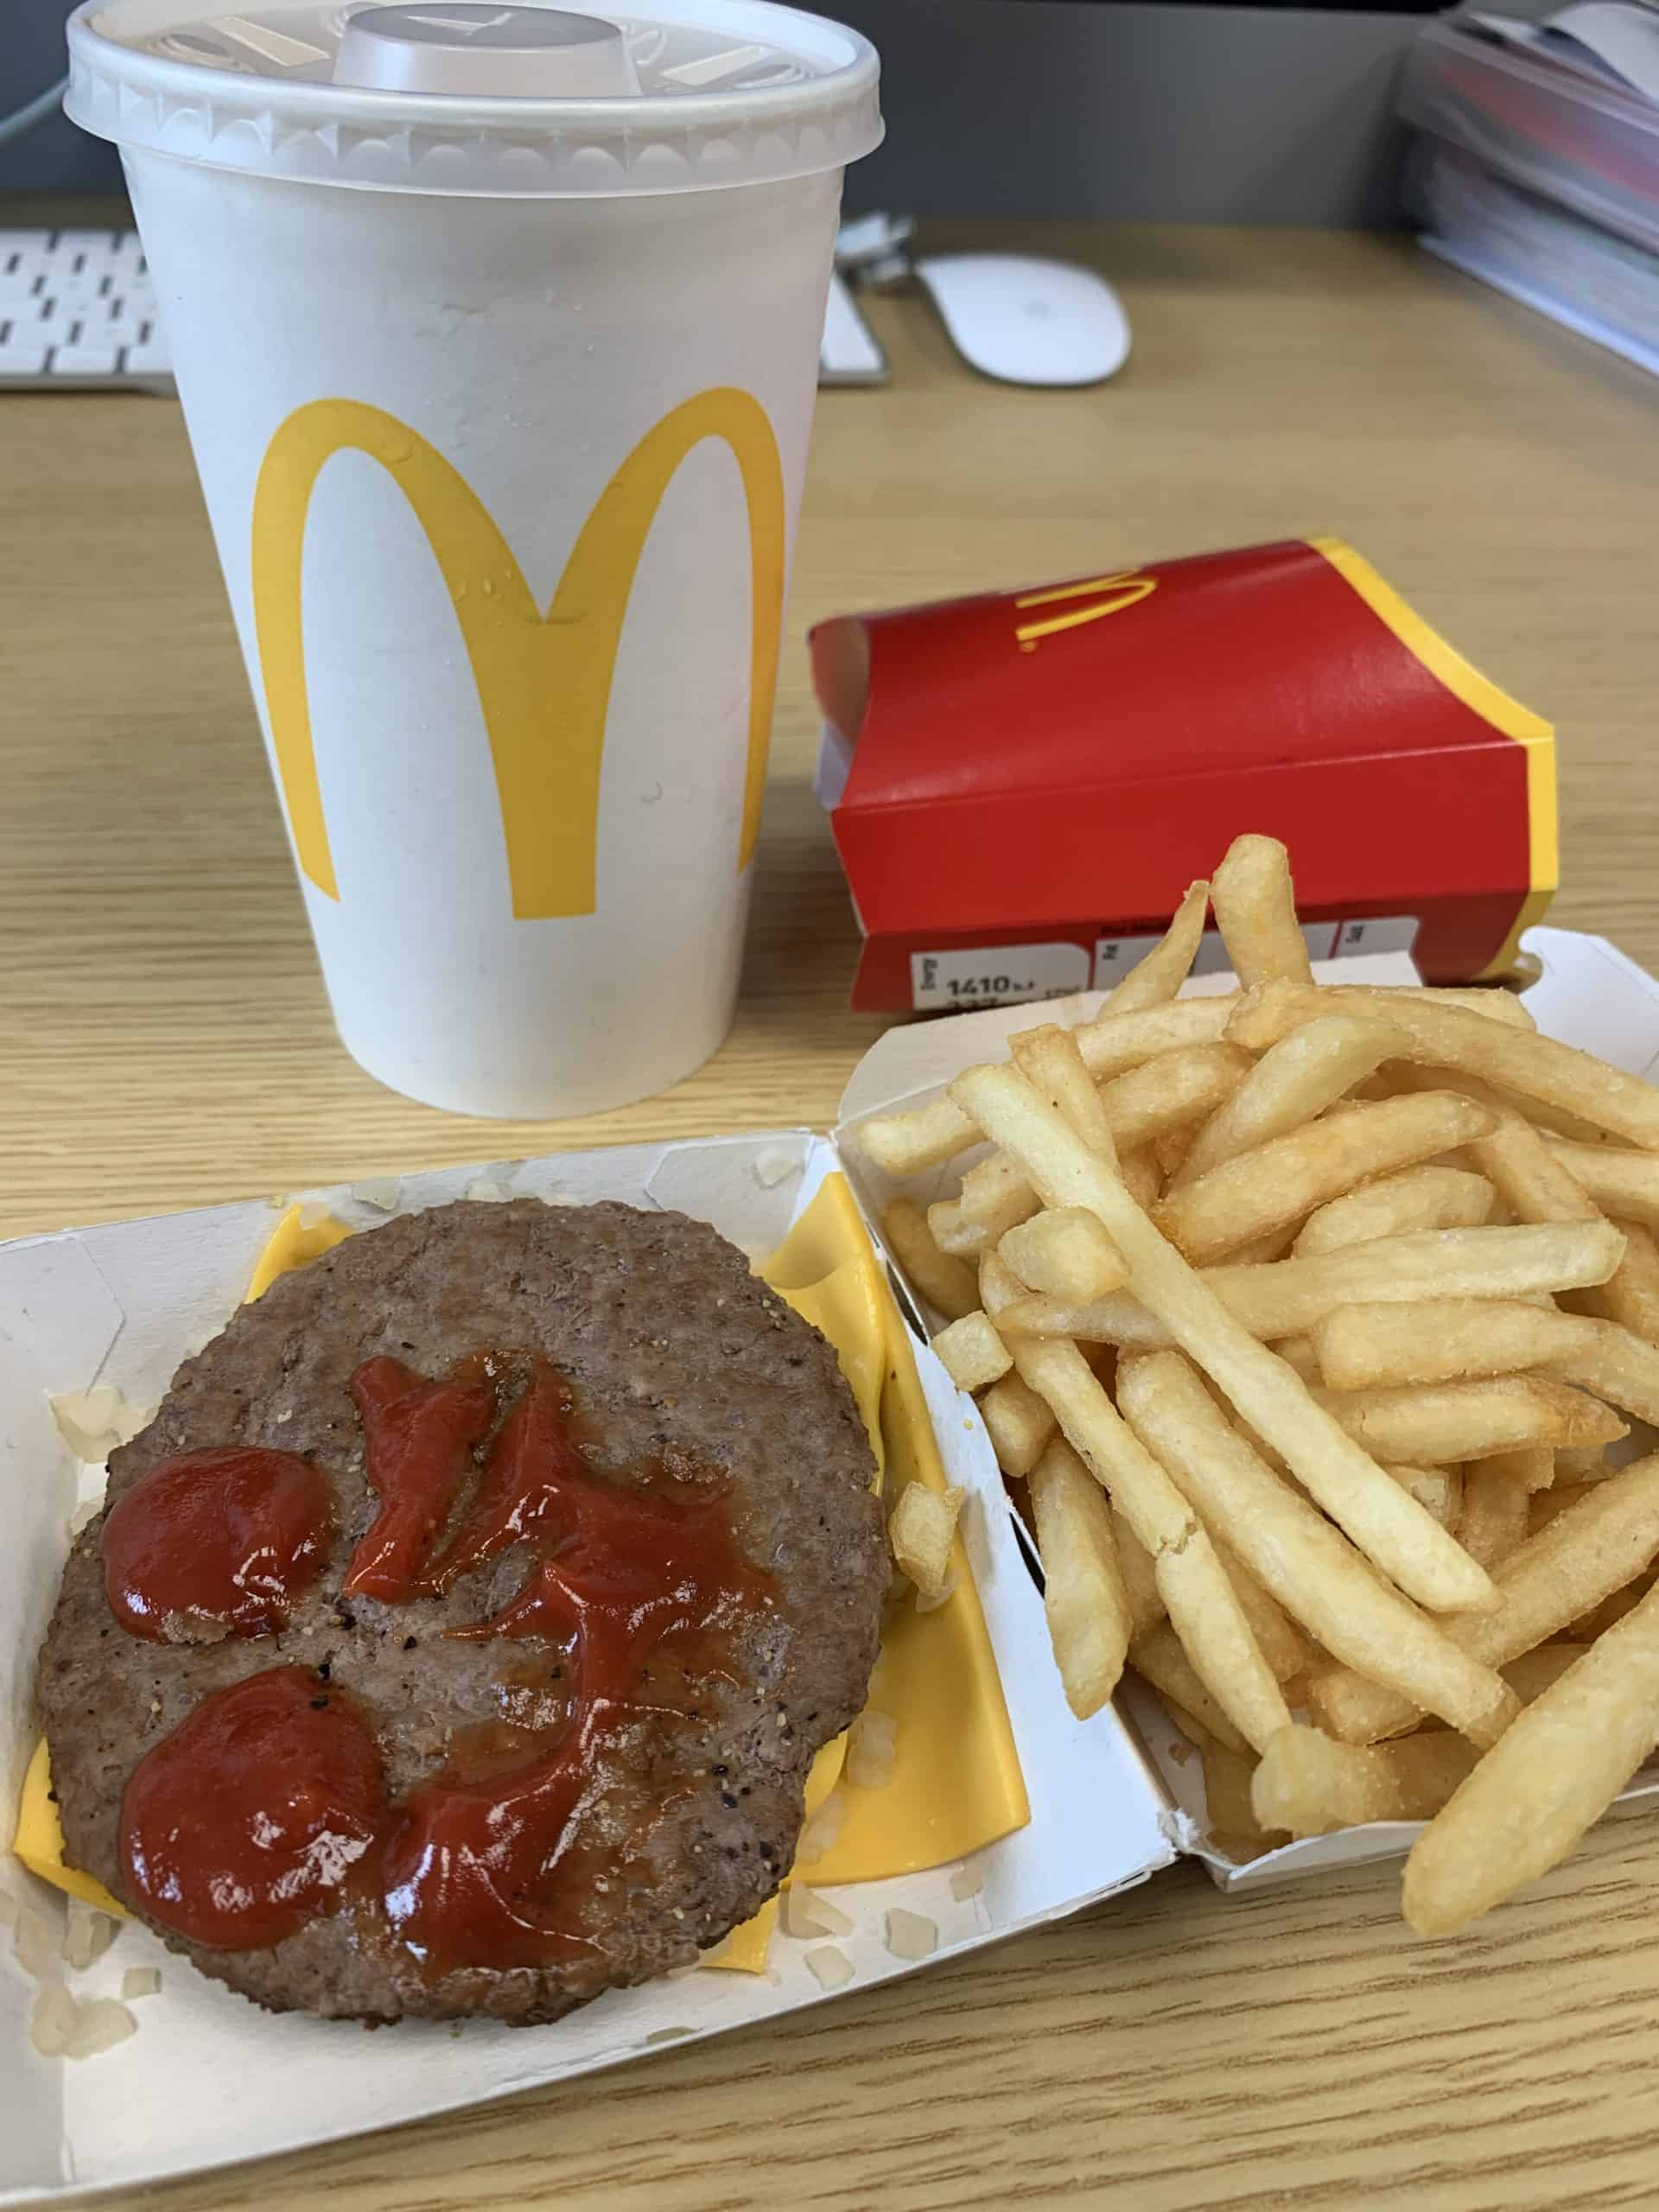 mcdonald's gluten free in the uk